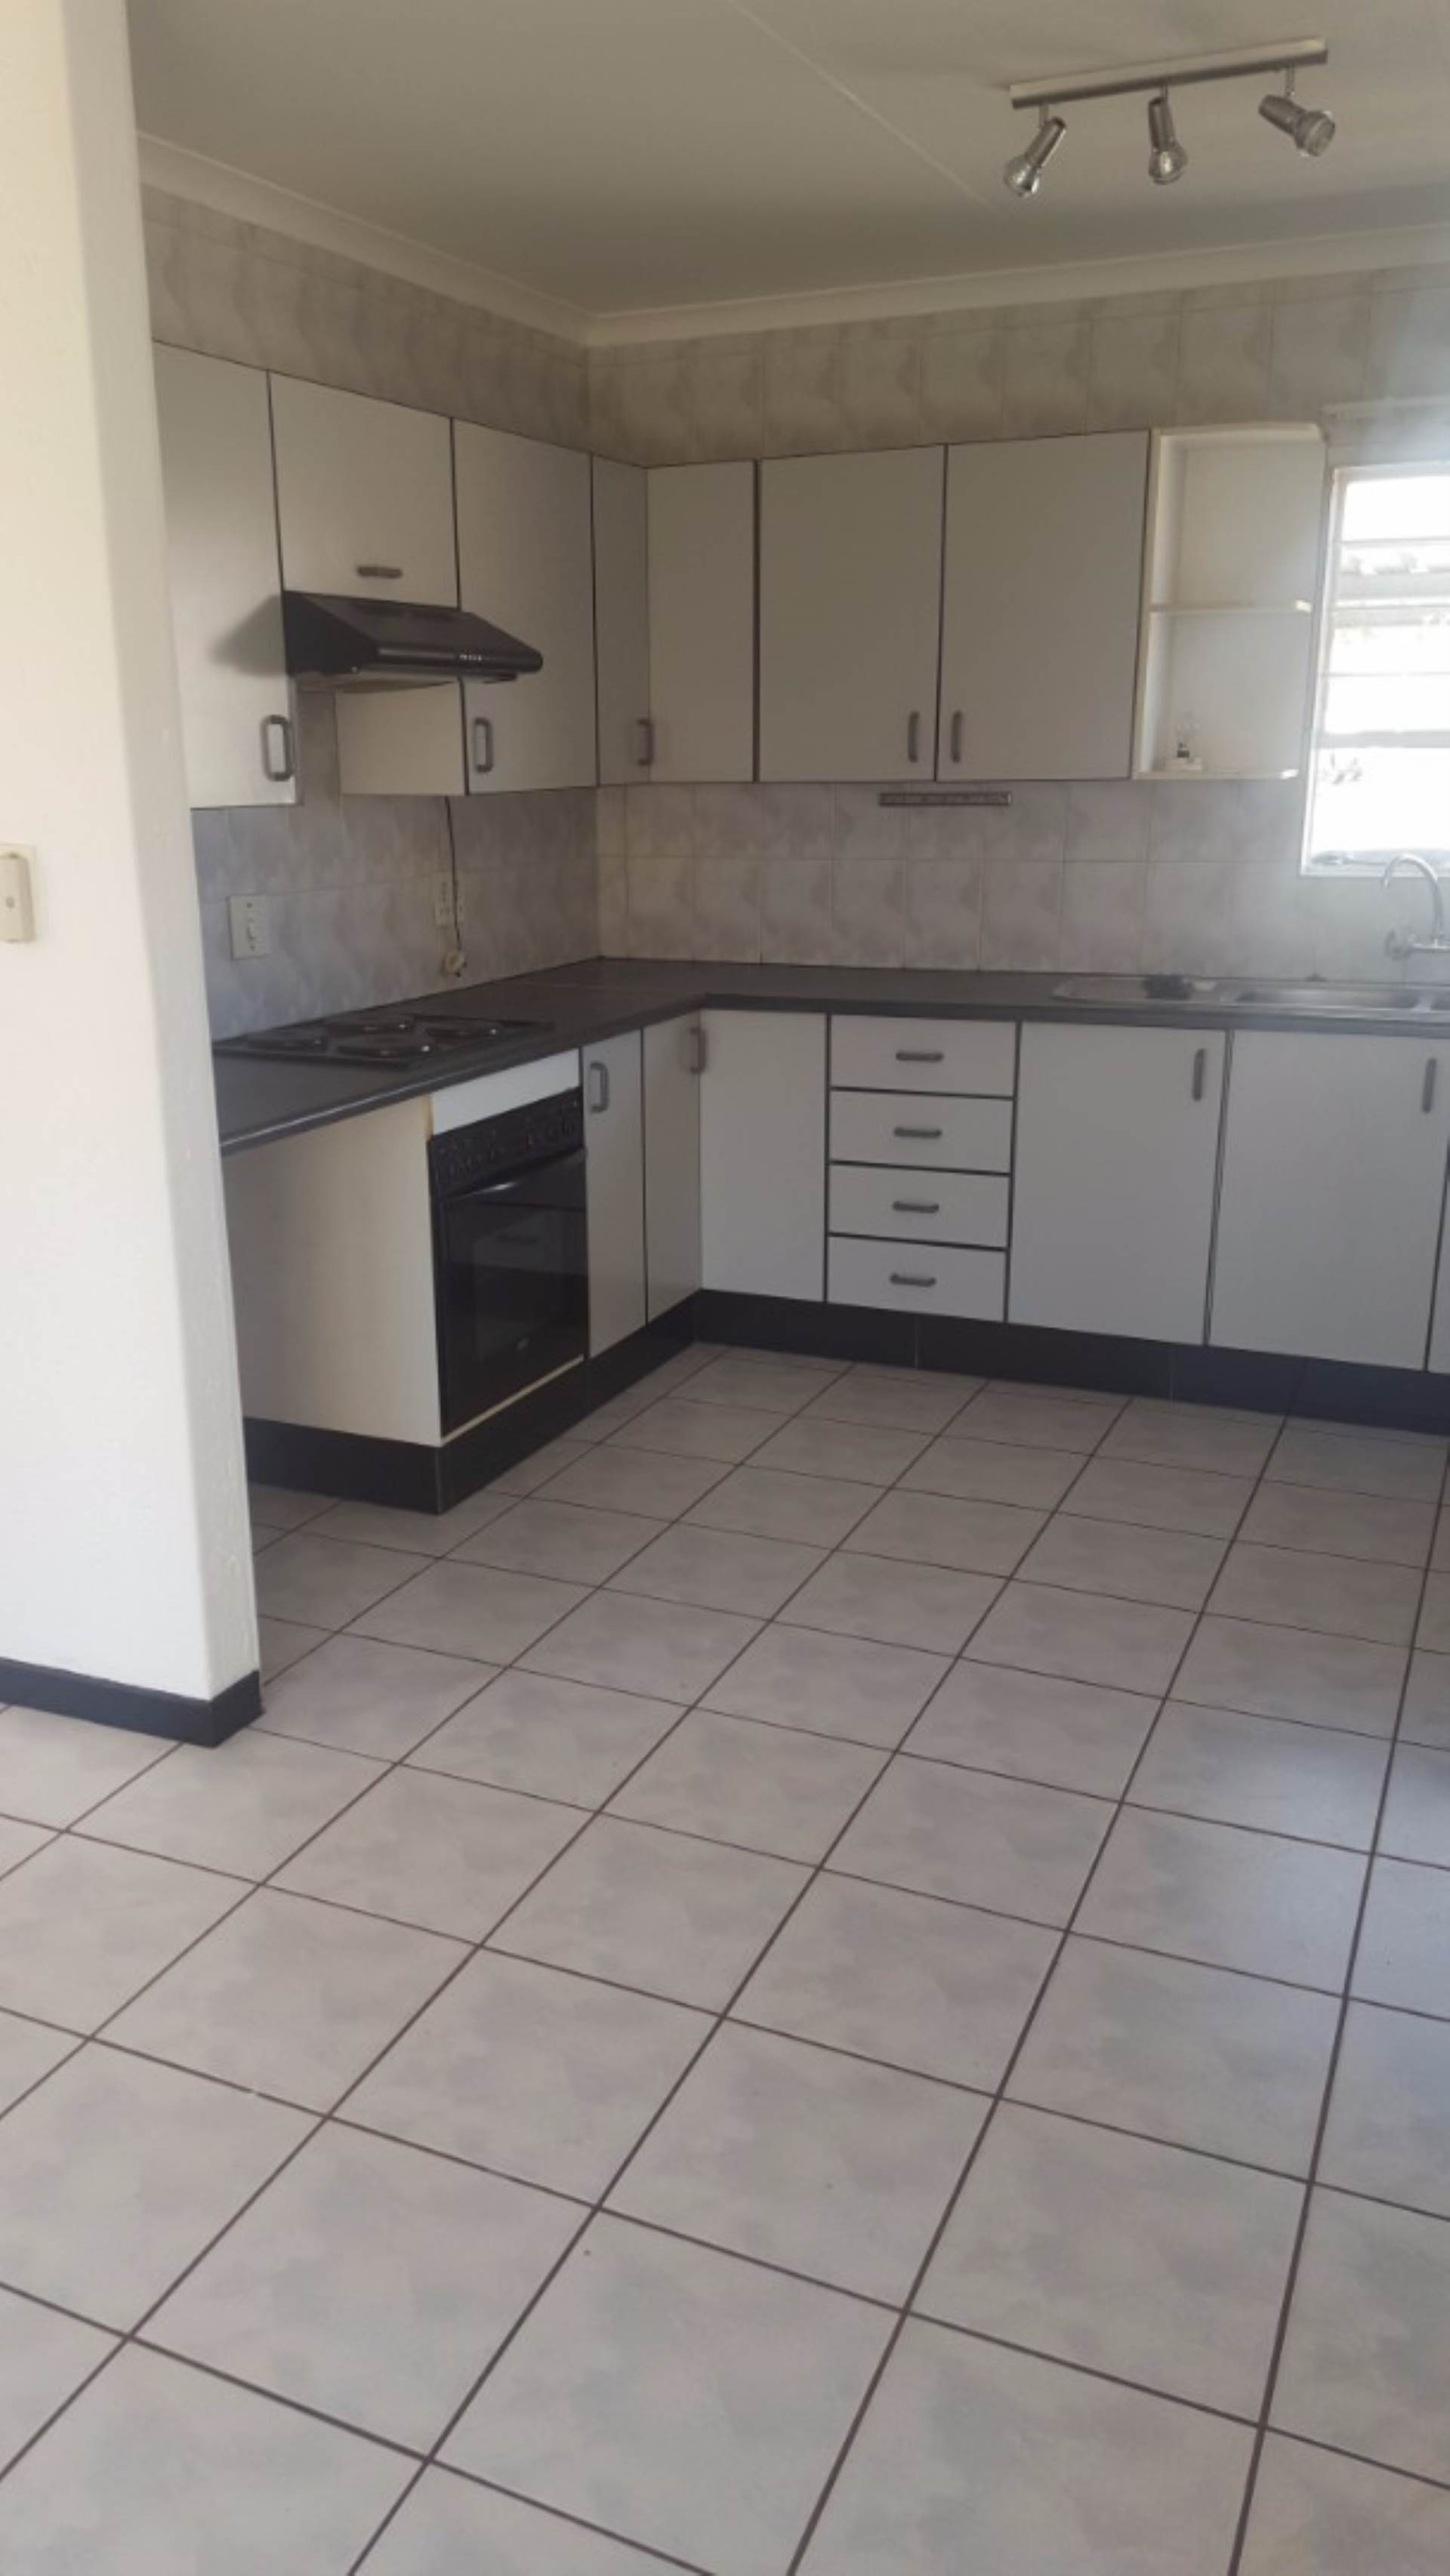 3 BedroomTownhouse To Rent In Witfield